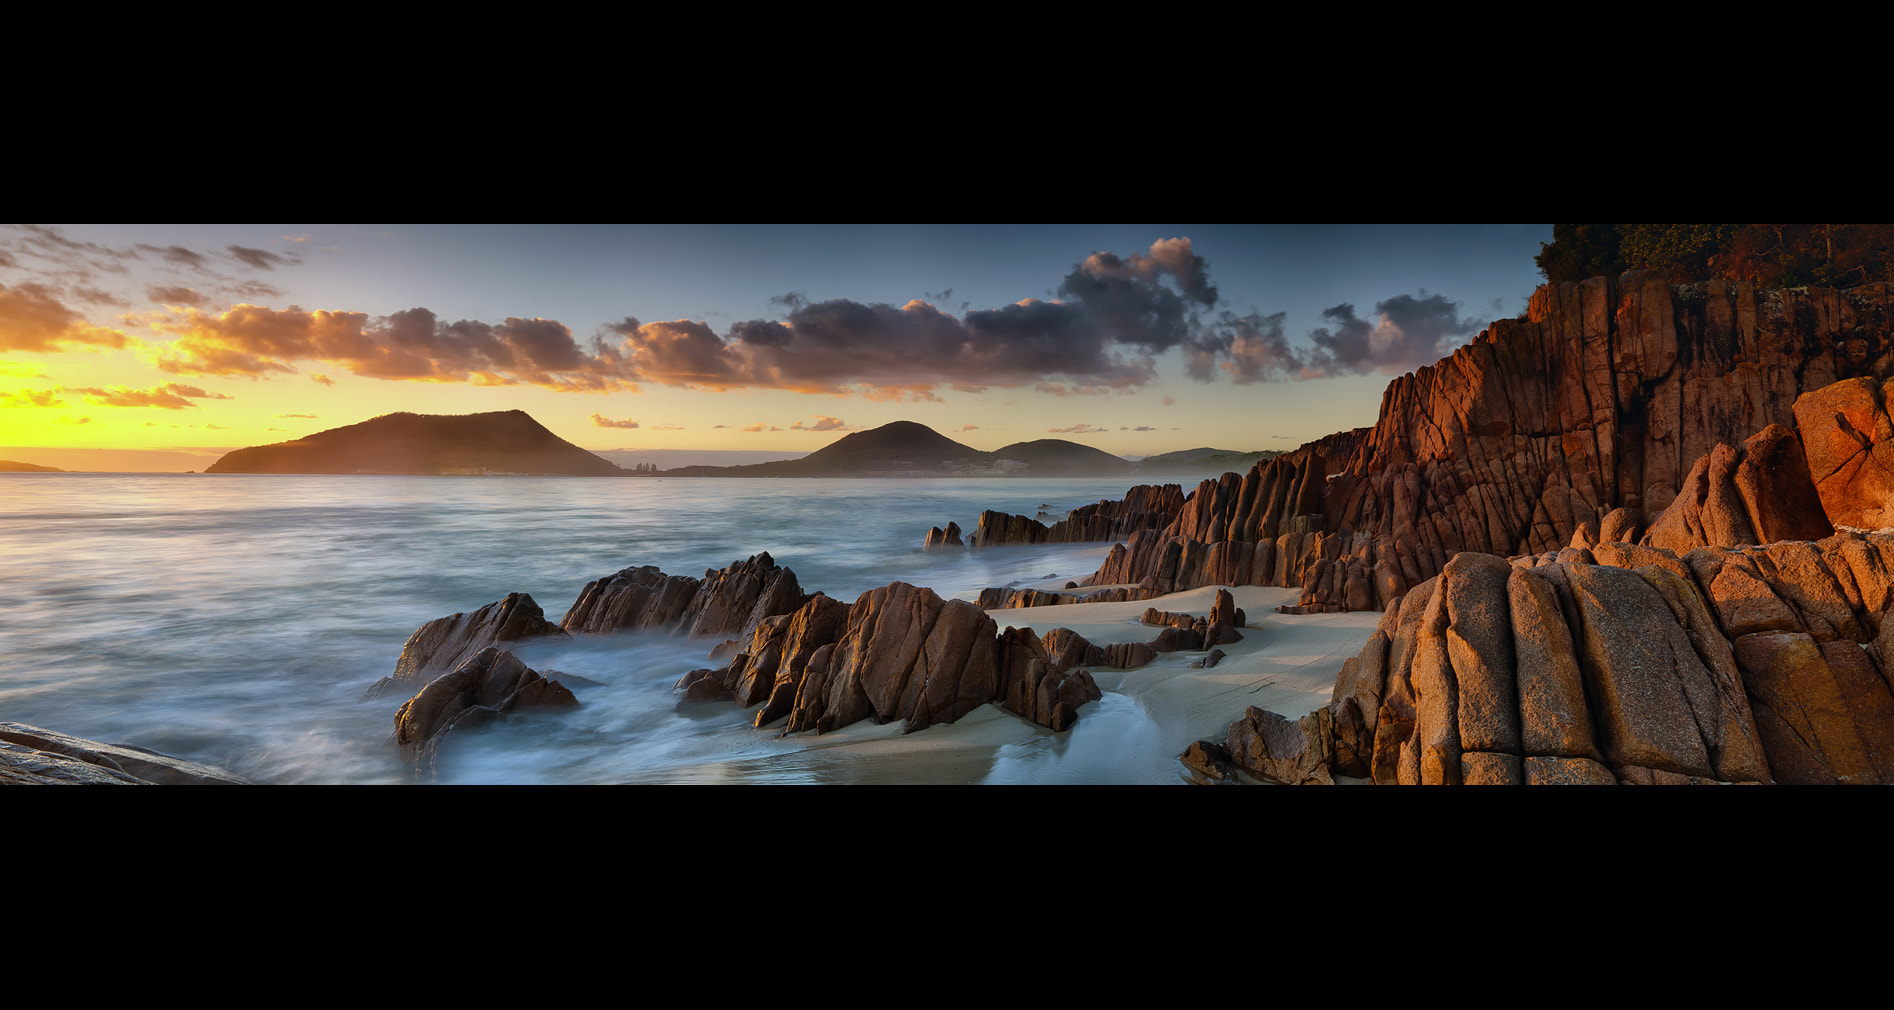 Photograph 32°42′37.24″S 152°9′41″E by Timothy Poulton on 500px